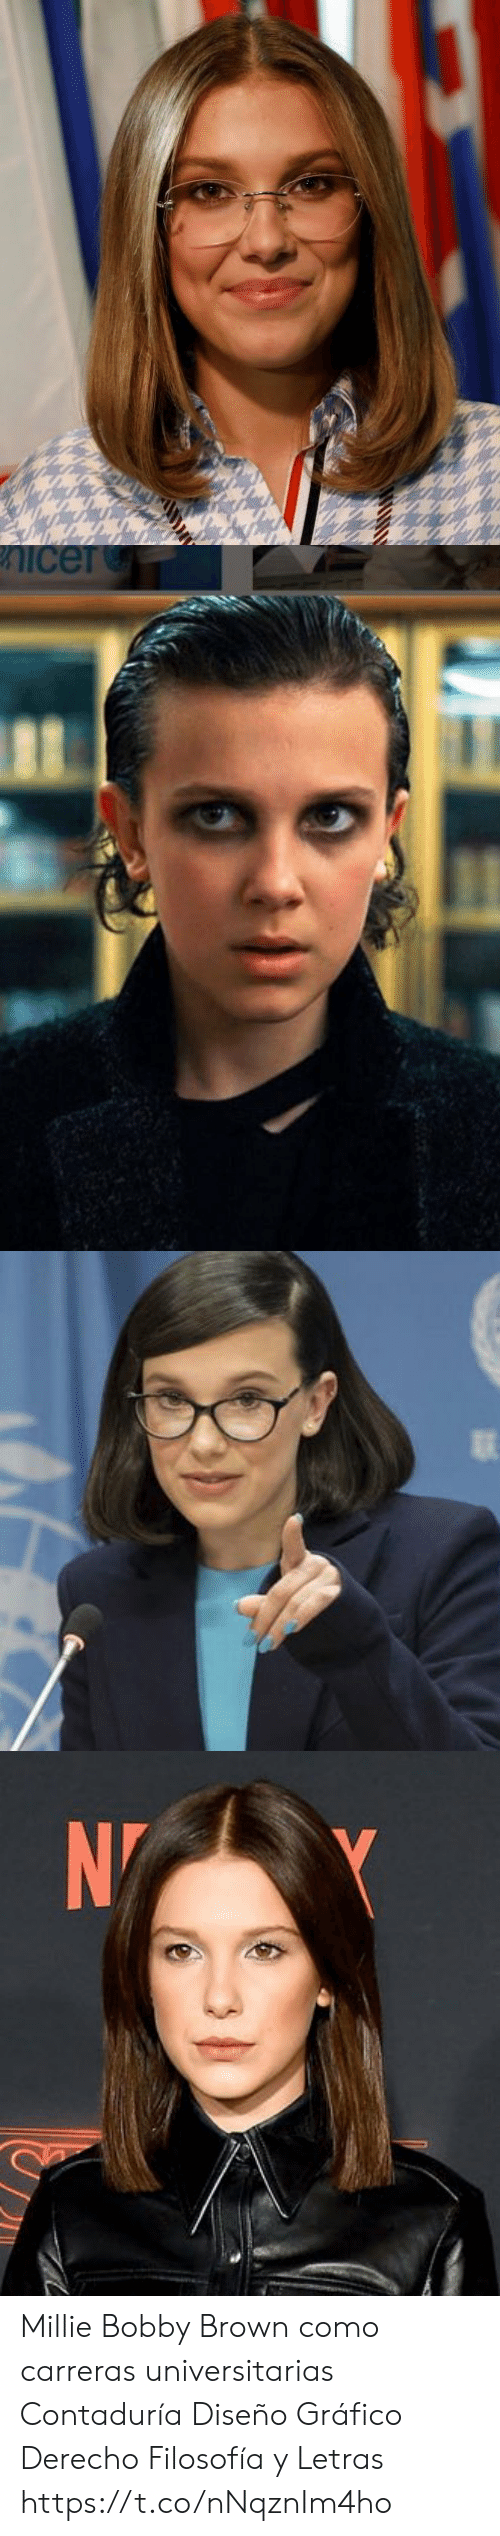 International: icer   N Millie Bobby Brown como carreras universitarias  Contaduría Diseño Gráfico Derecho  Filosofía y Letras https://t.co/nNqznIm4ho